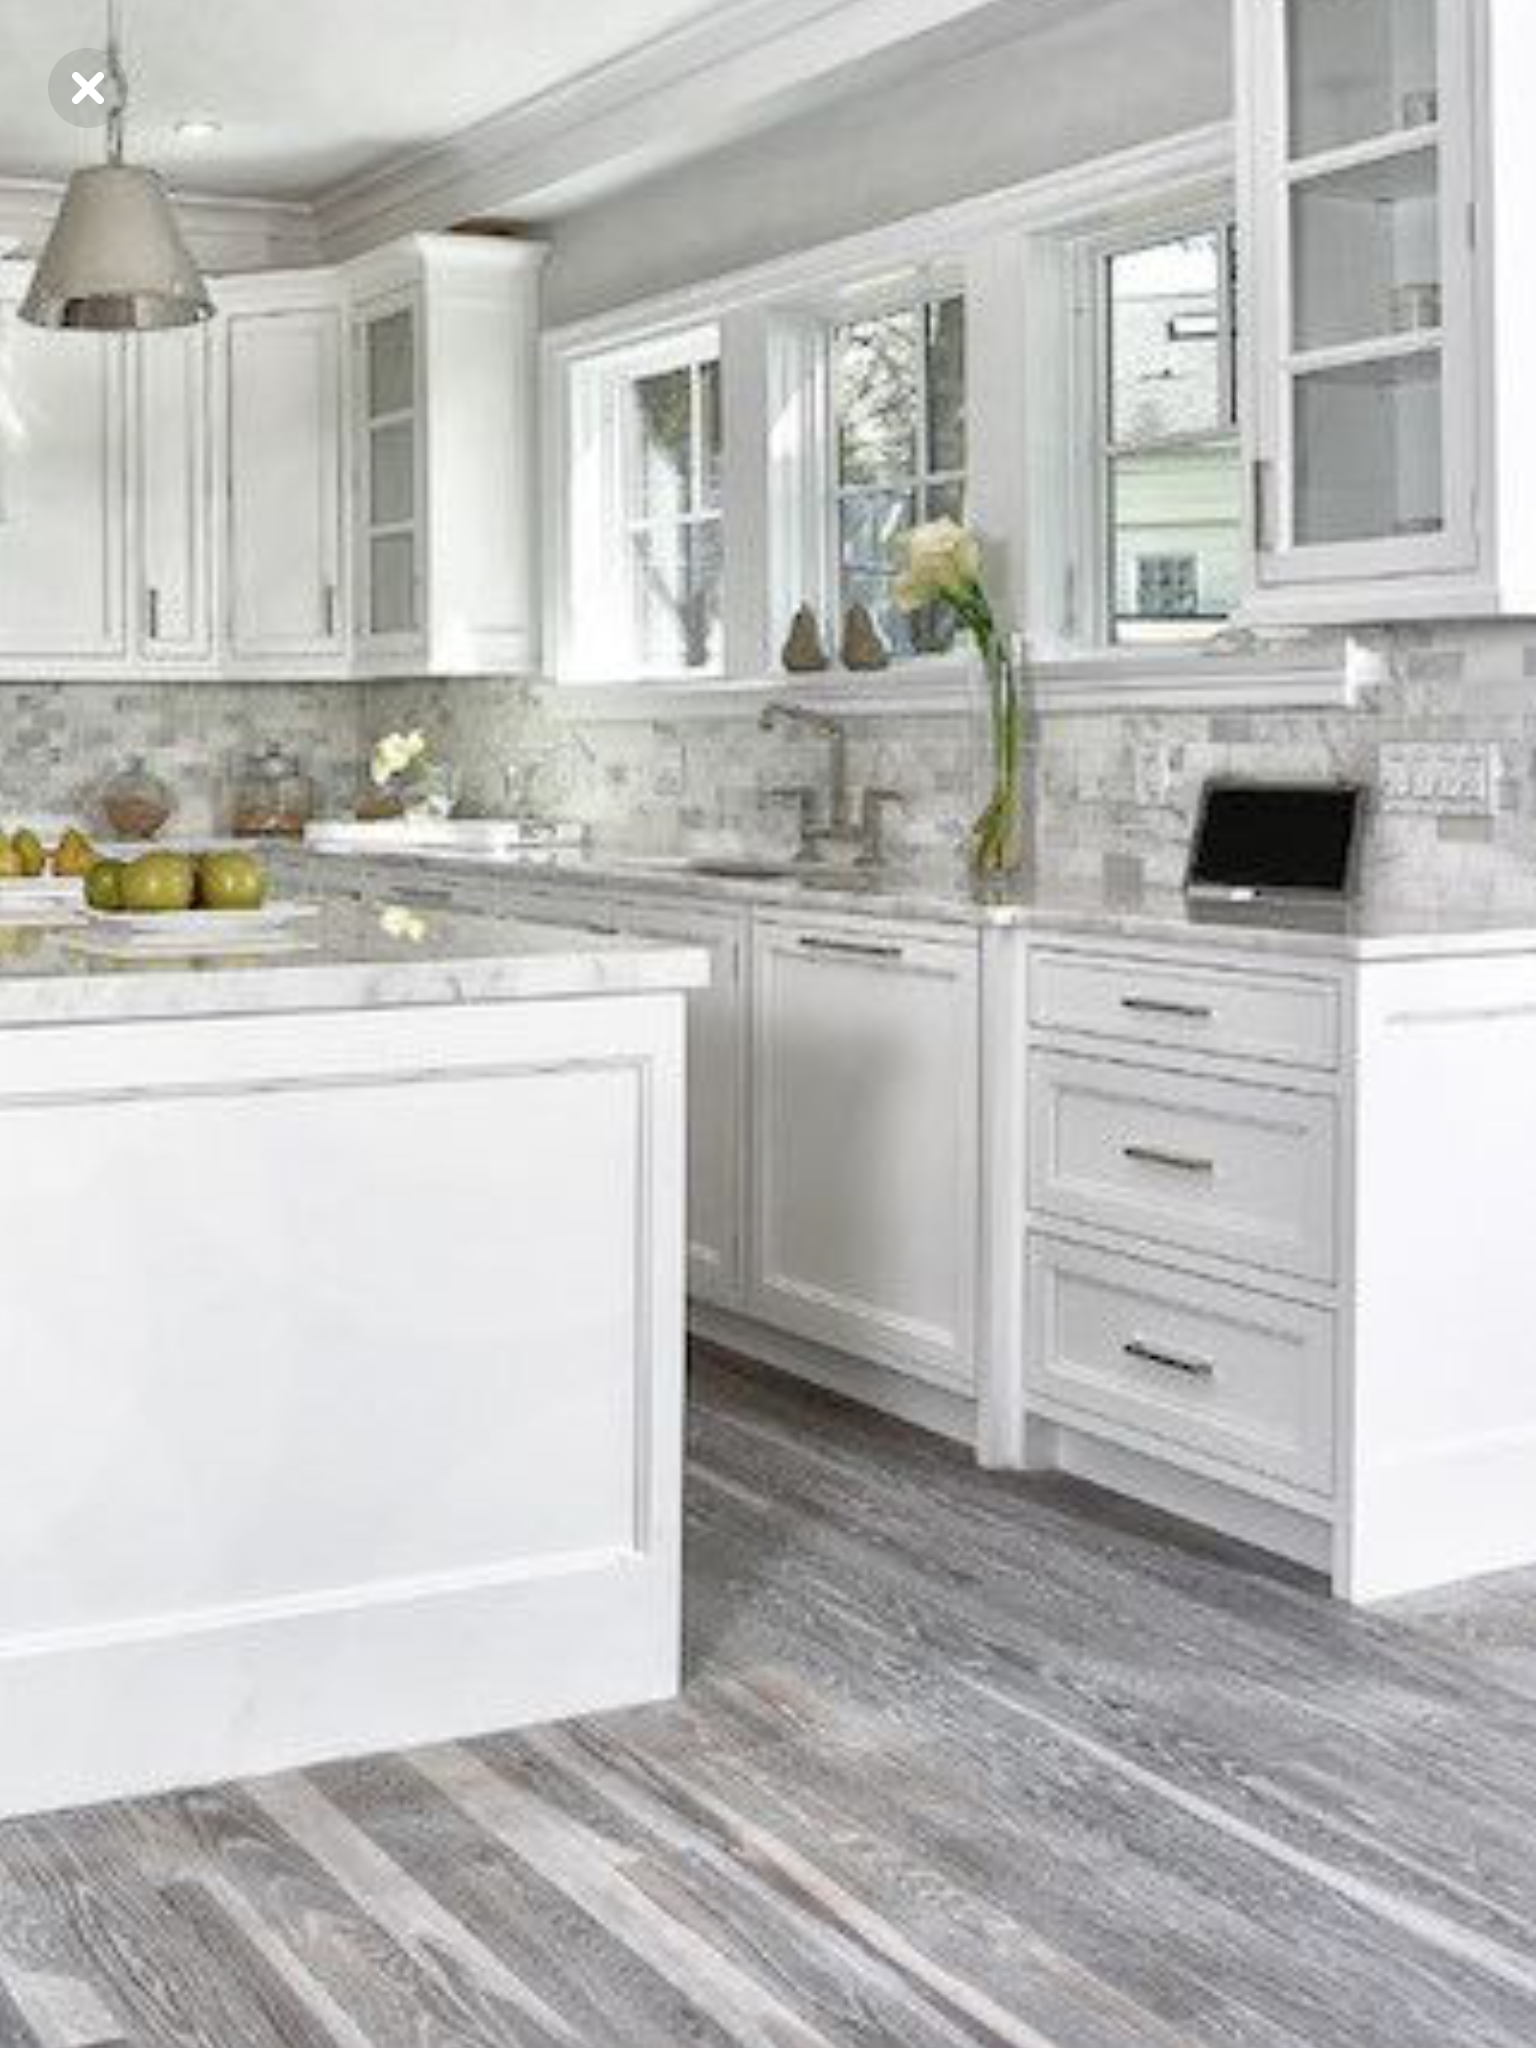 Download Wallpaper Flooring Options For White Kitchen Cabinets